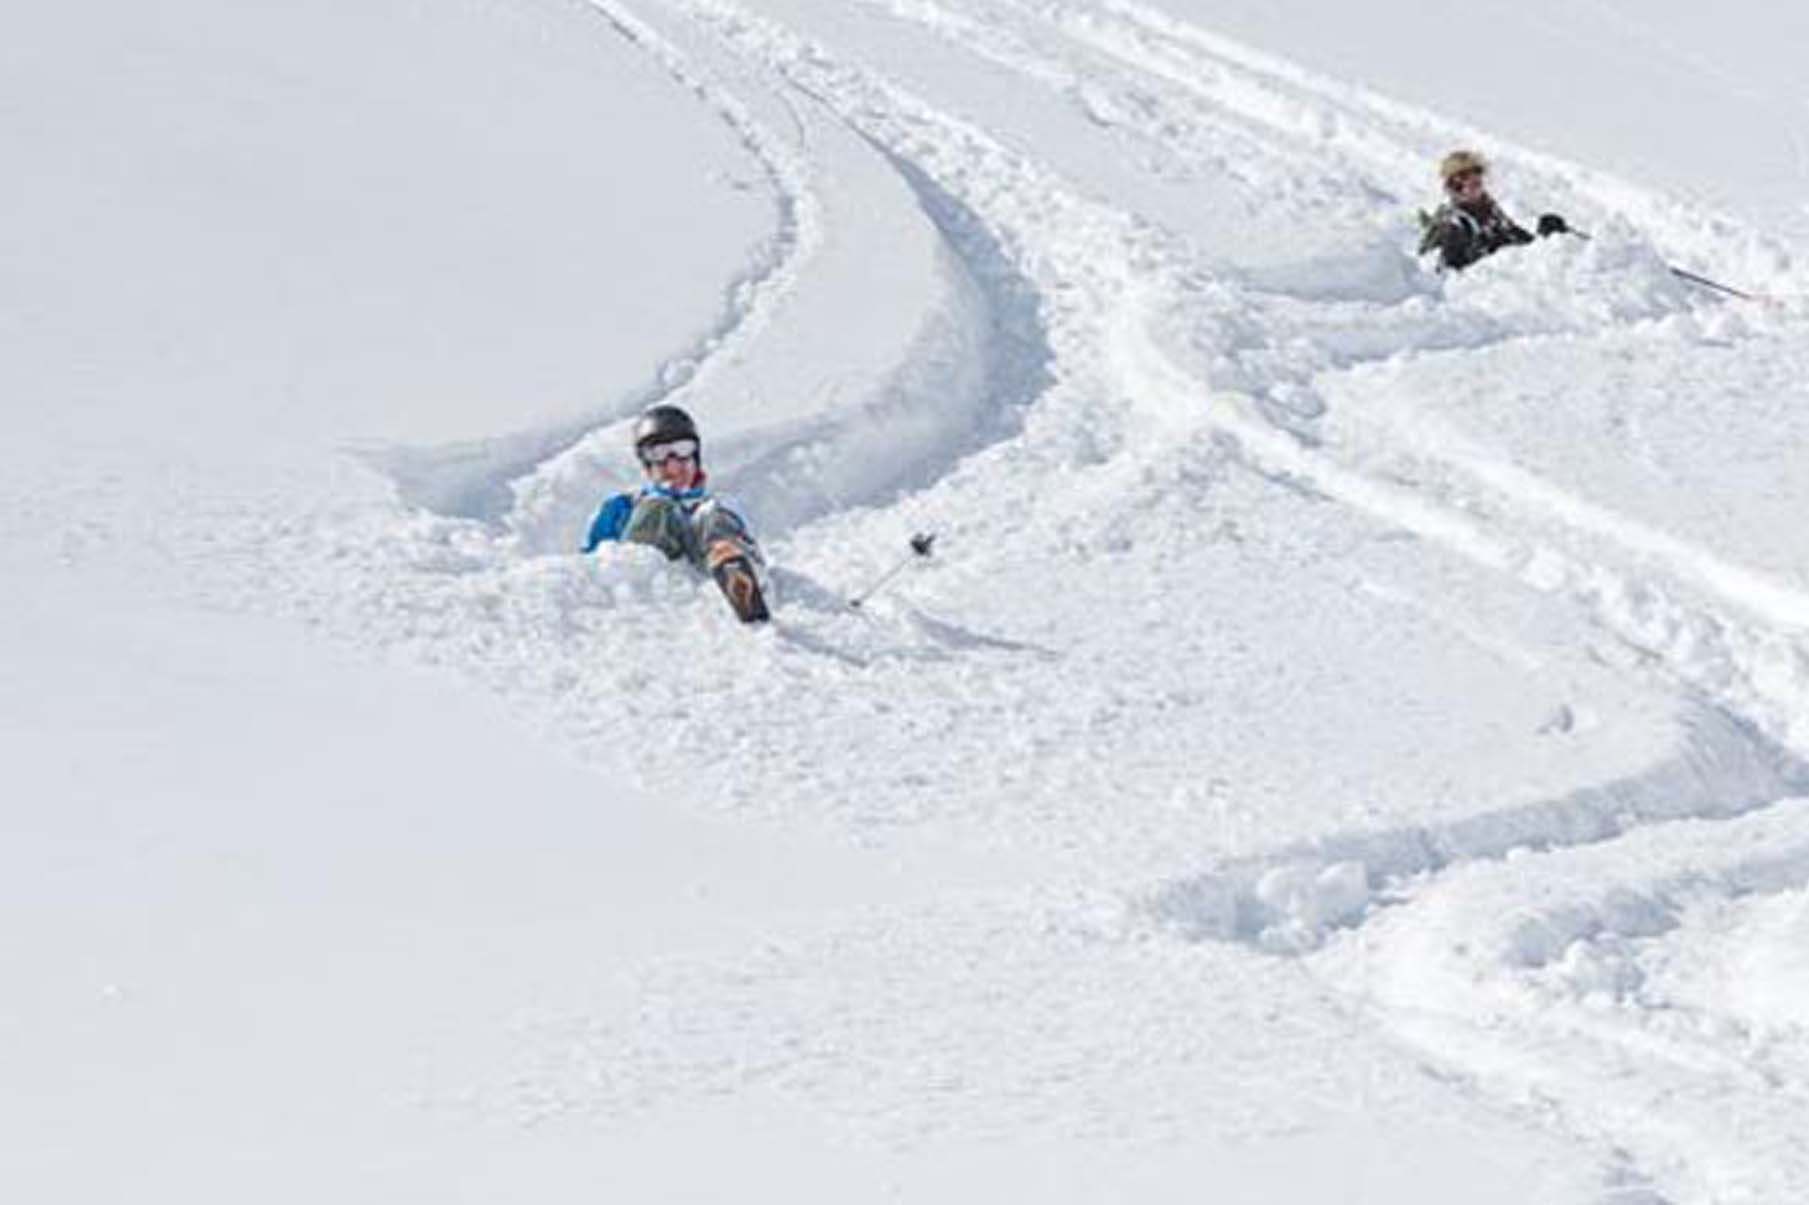 Val d'Isere off-piste